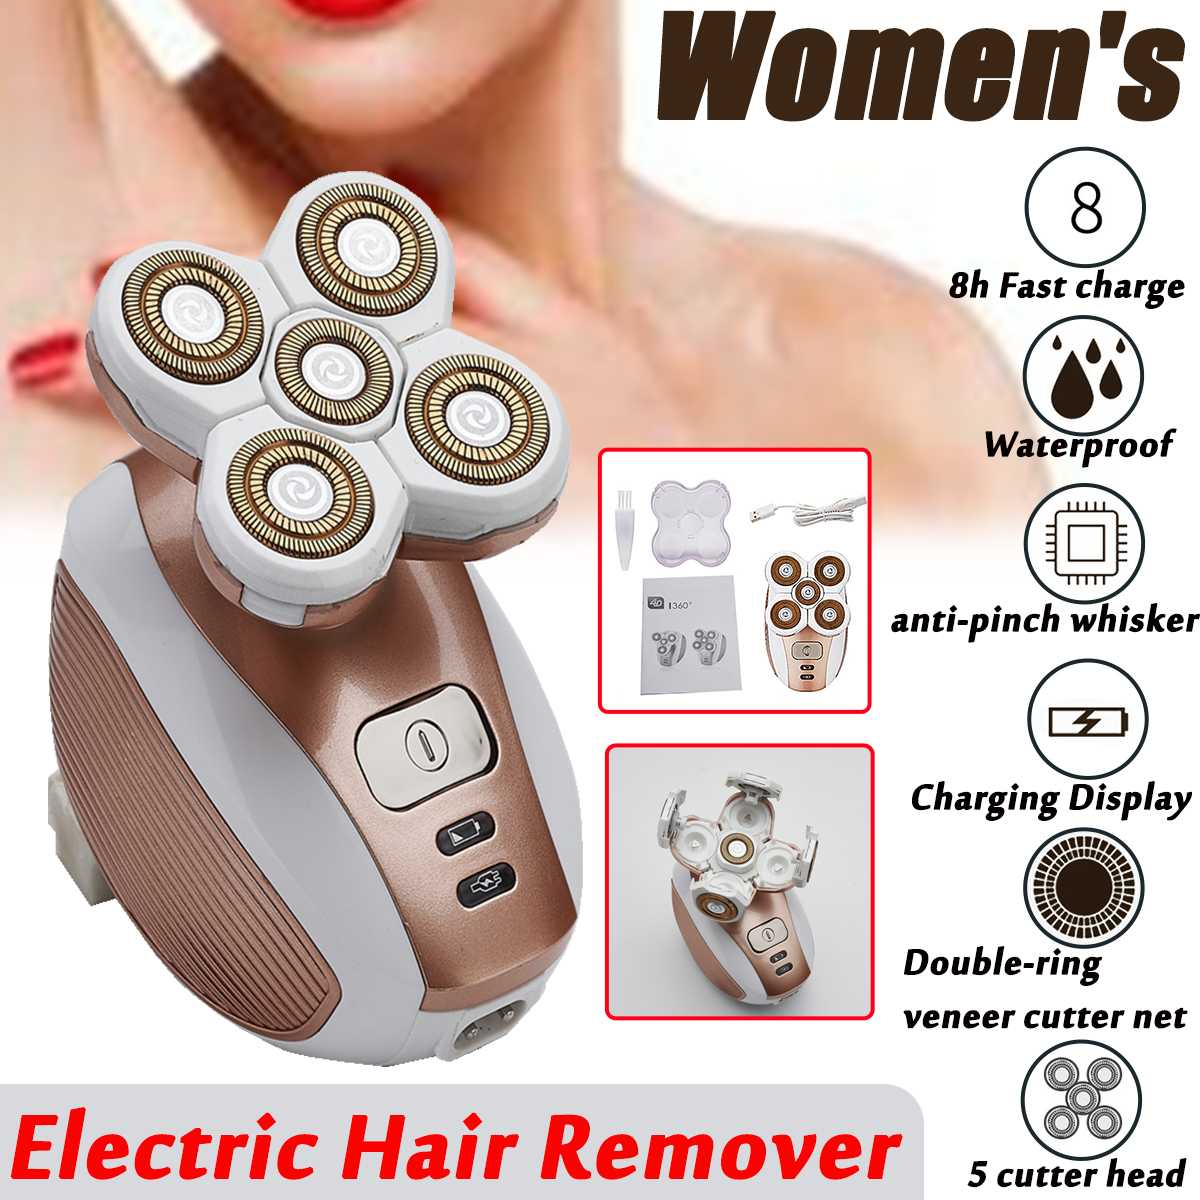 110-240V Washable Women's Facial Electric Hair